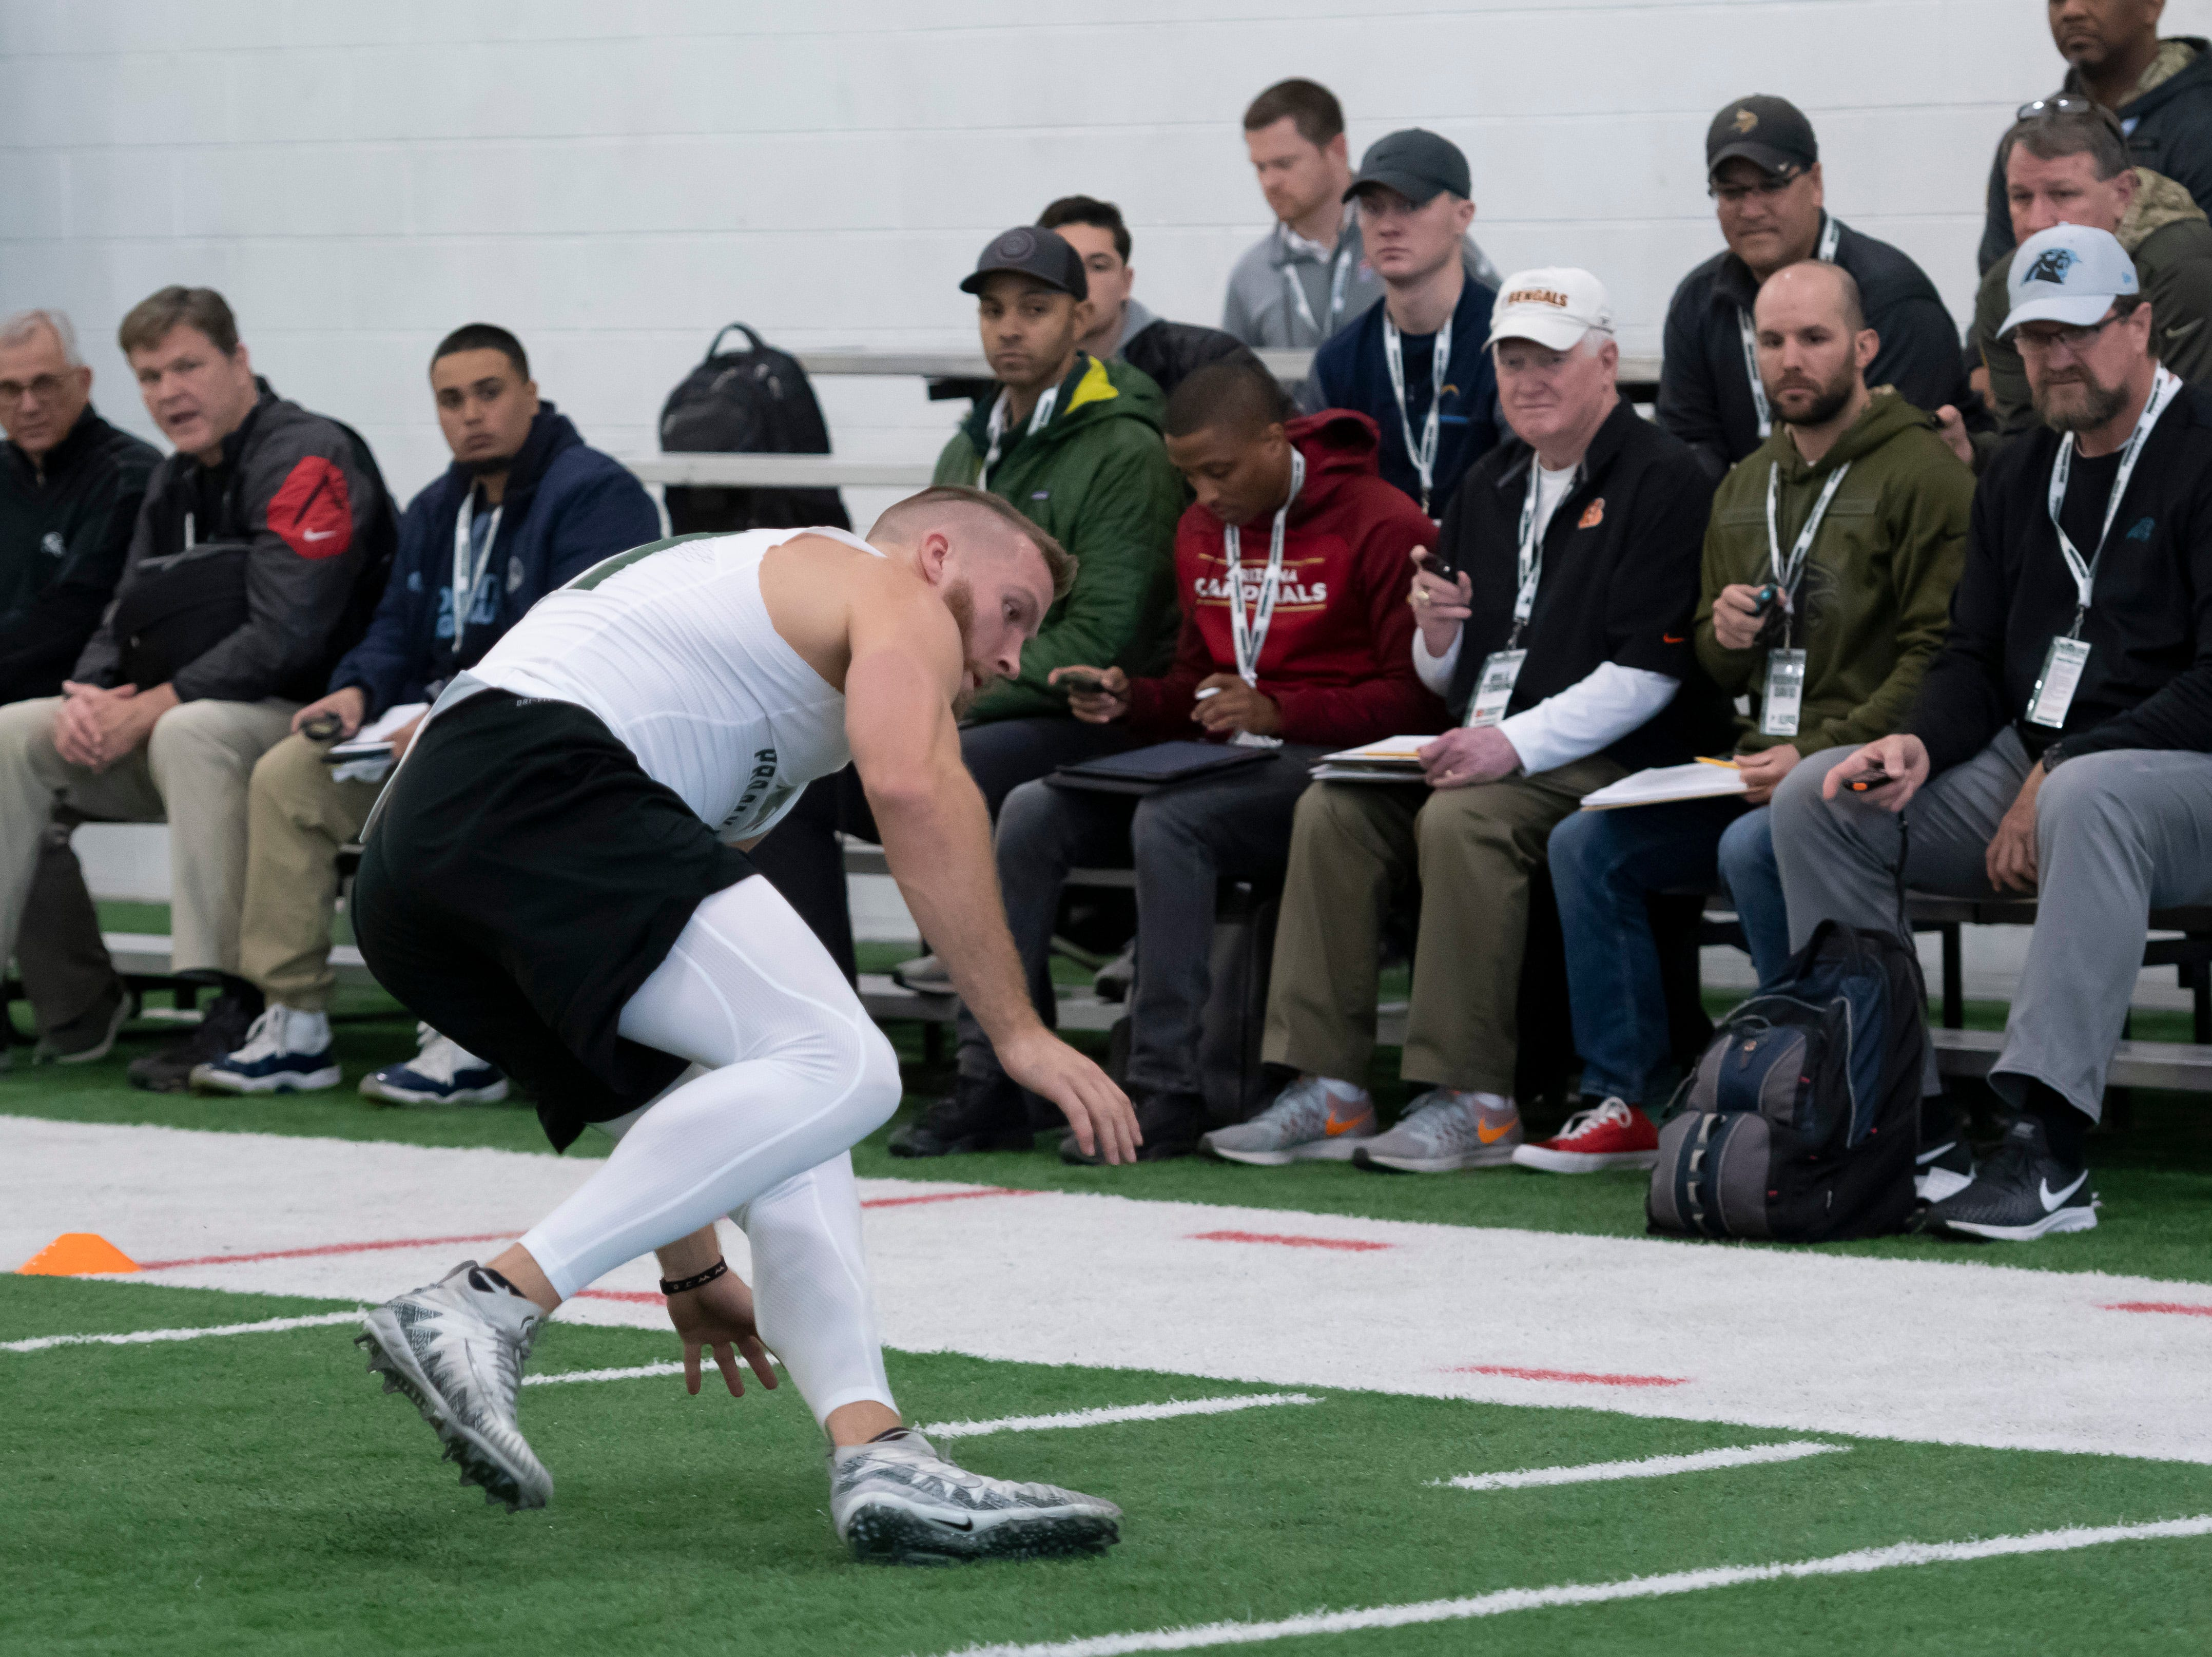 Michigan State tight end Matt Sokol runs through shuttle drills under the watchful eyes of scouts and recruiters during an NFL pro day at the Duffy Daugherty Football facility, in East Lansing.